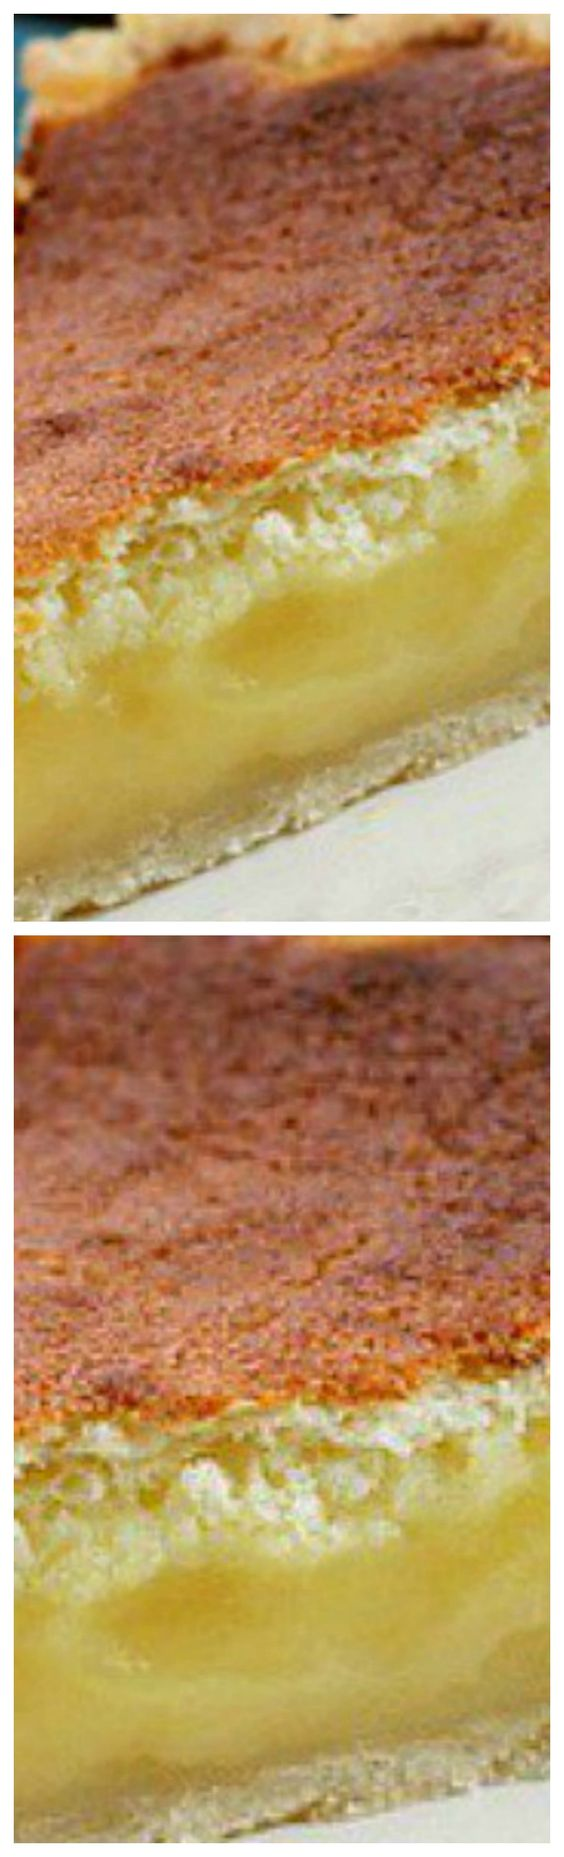 Lemon Sponge Pie ~ While baking, the pie separates into two layers, a soft topping while underneath a creamy lemon filling